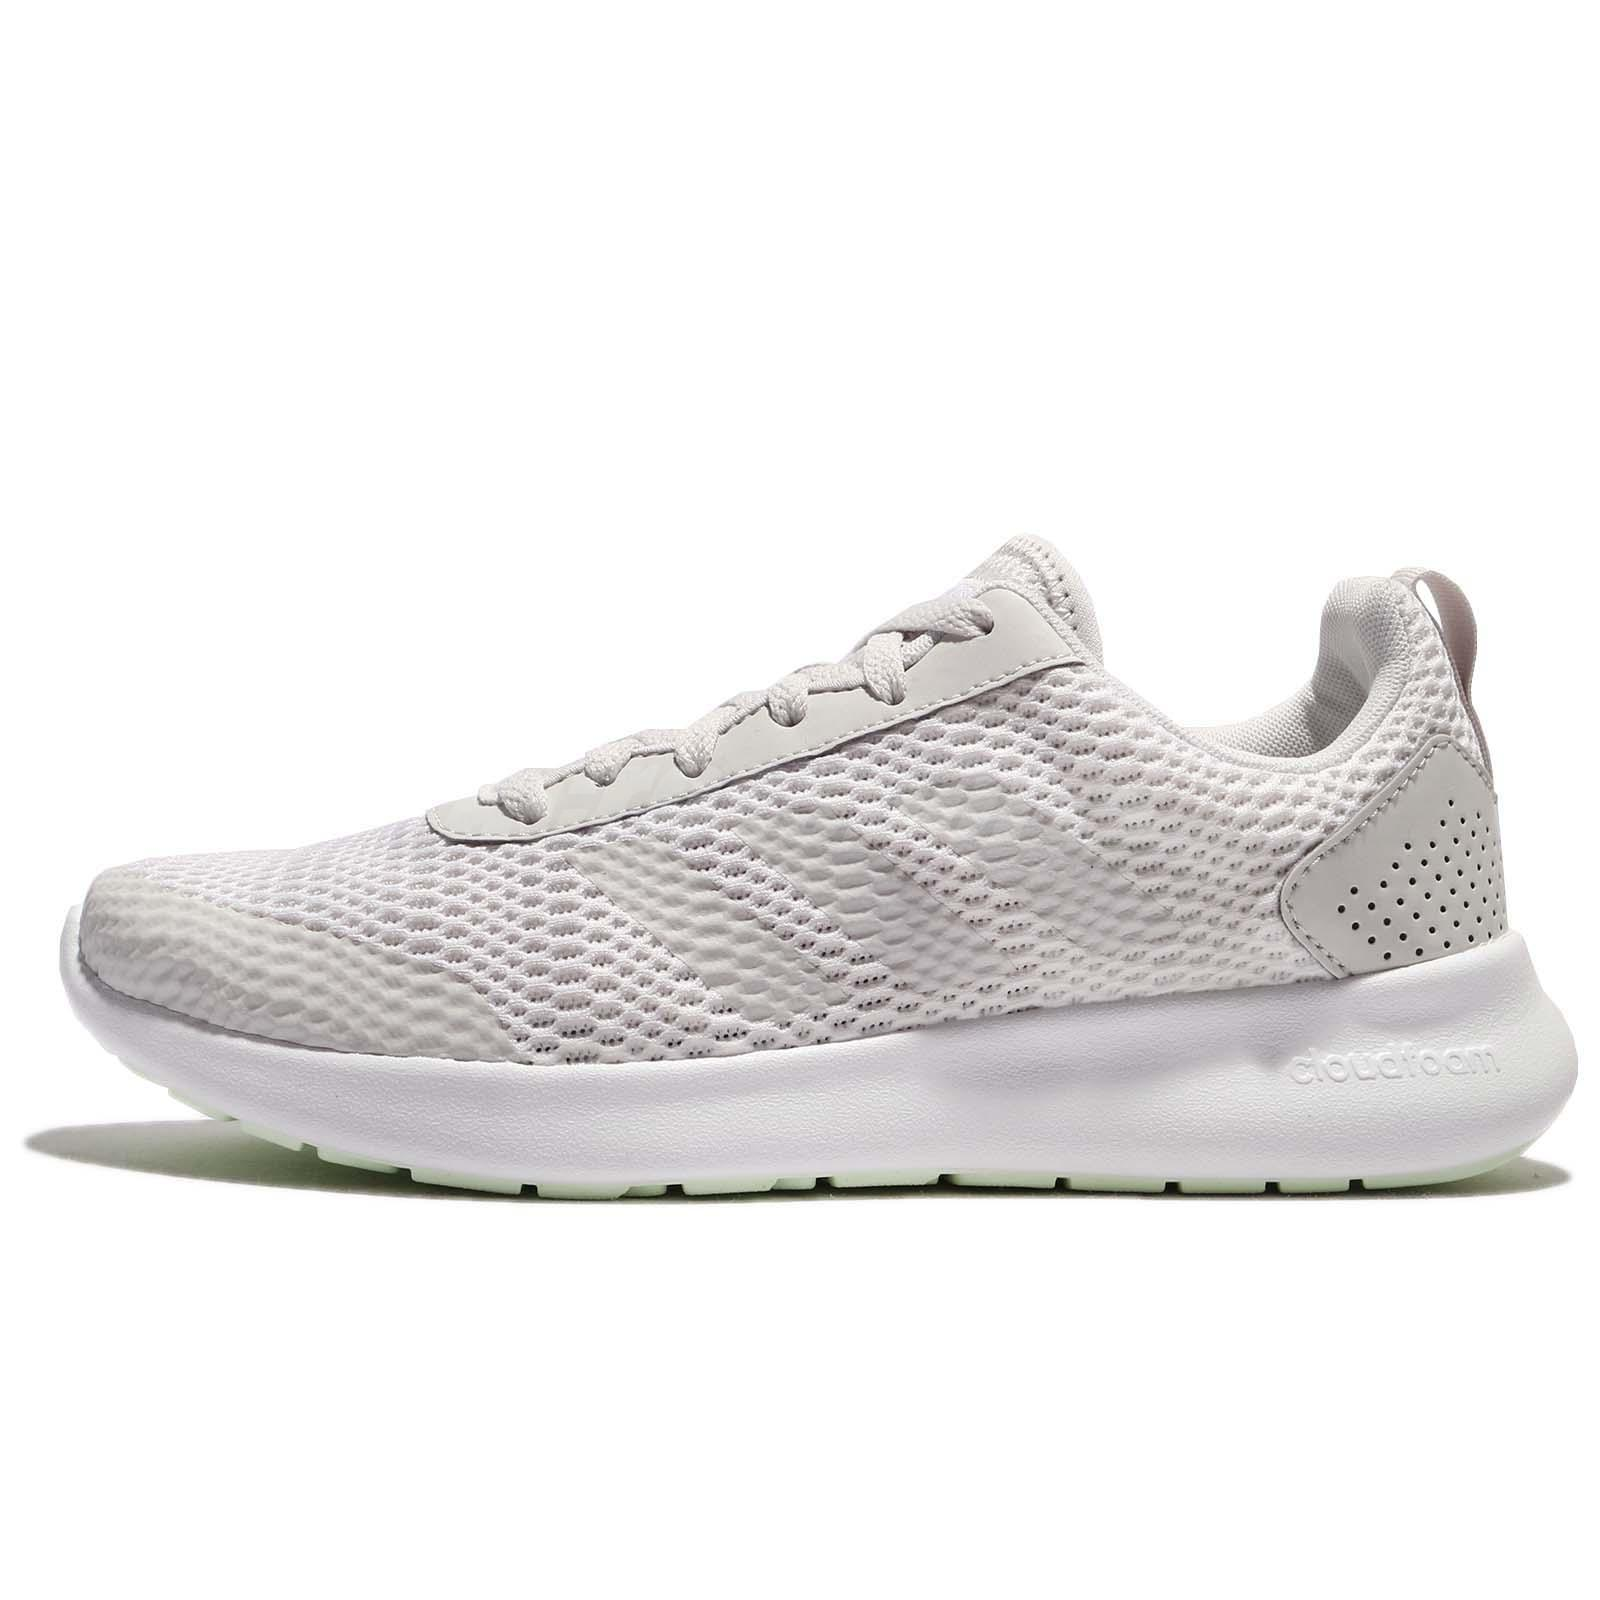 adidas Element Race White Grey Women Running Shoes Sneakers Trainers DB1482 DcJp7Vpz